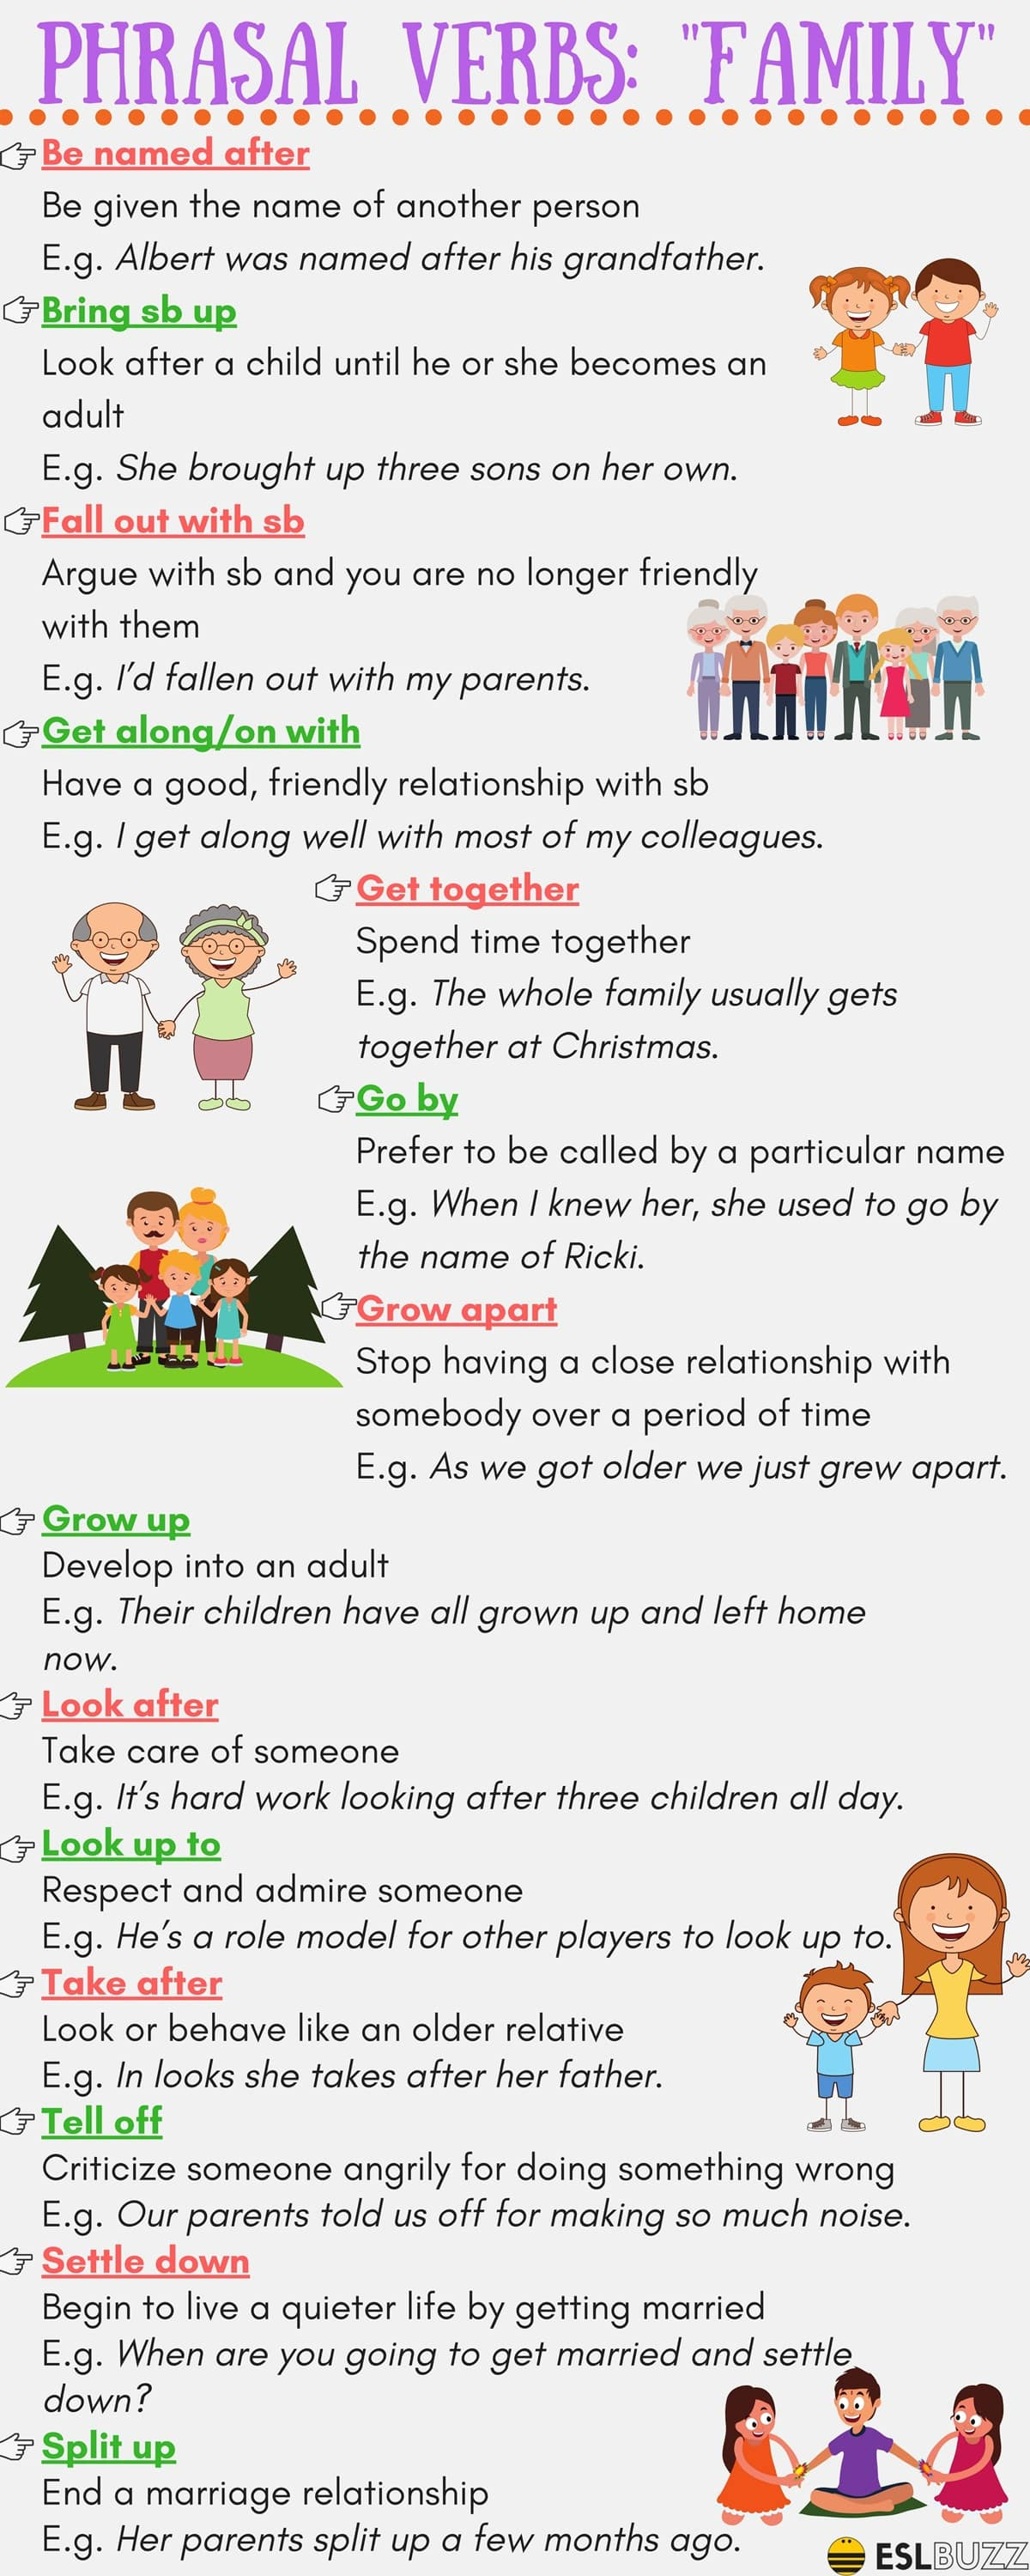 English Phrasal Verbs for Communication with Useful Examples 3